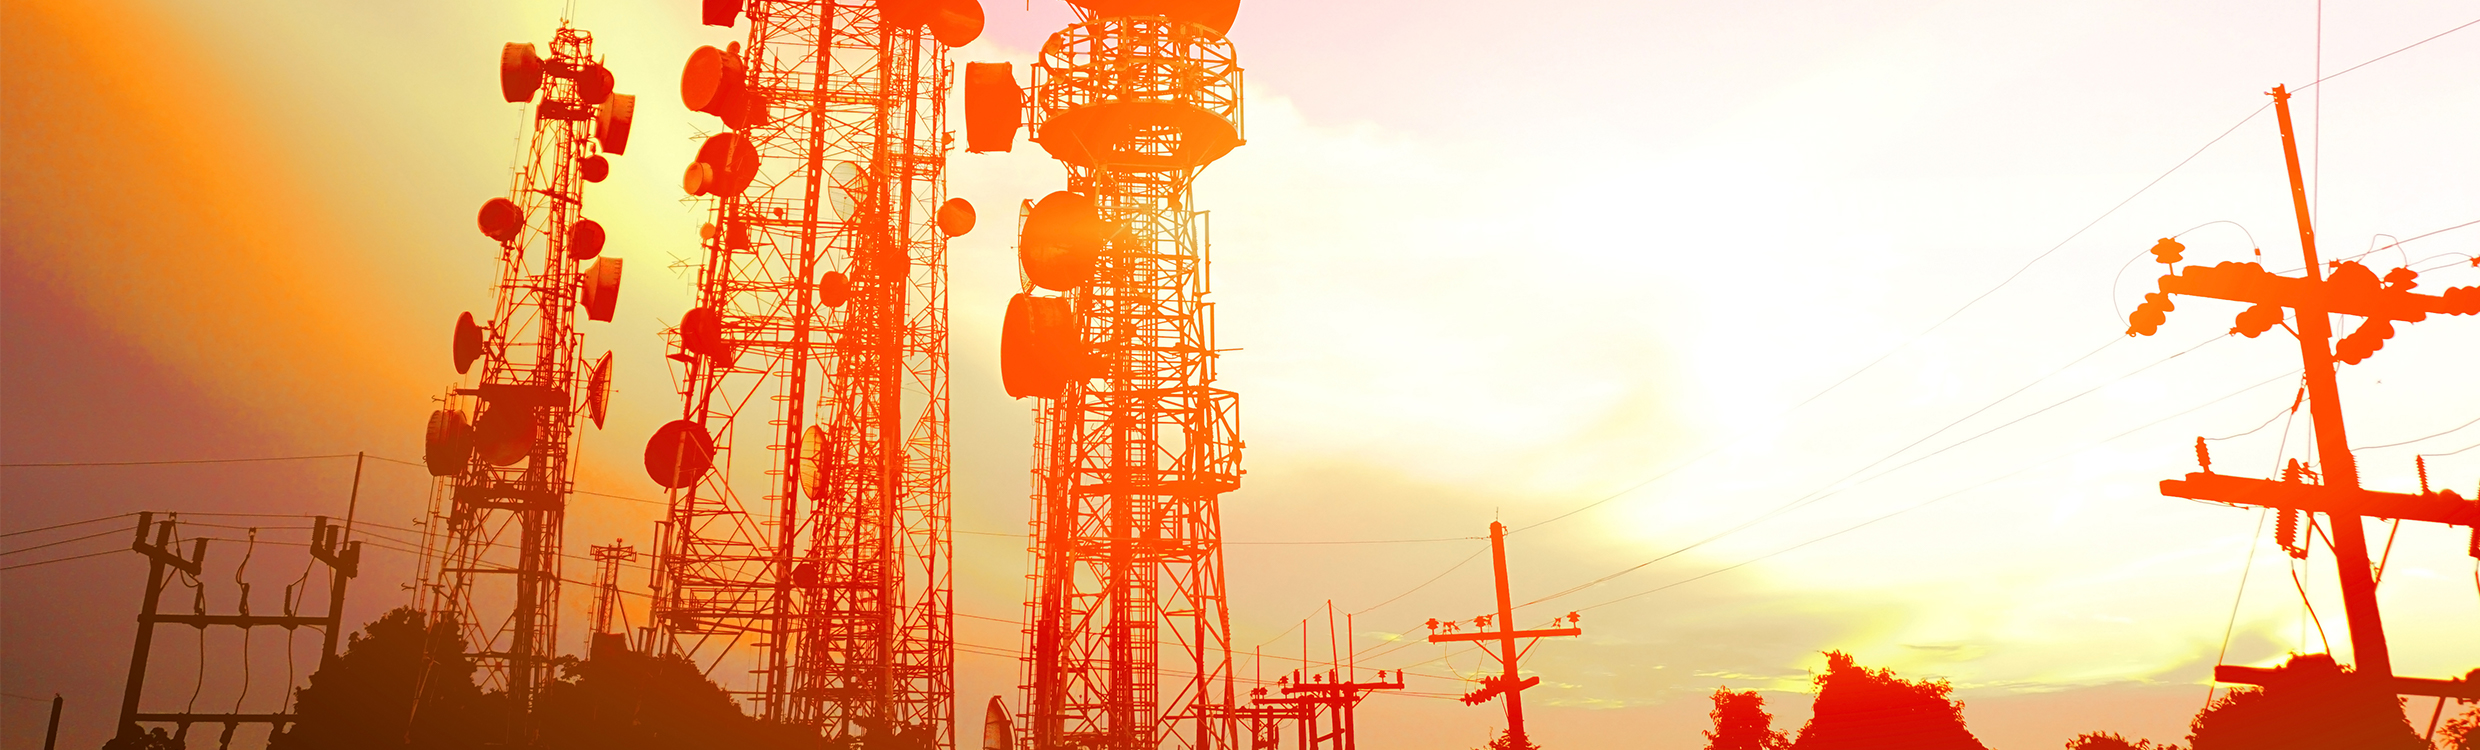 HxGN SmartNet - Satellite Positioning Services for Telecom